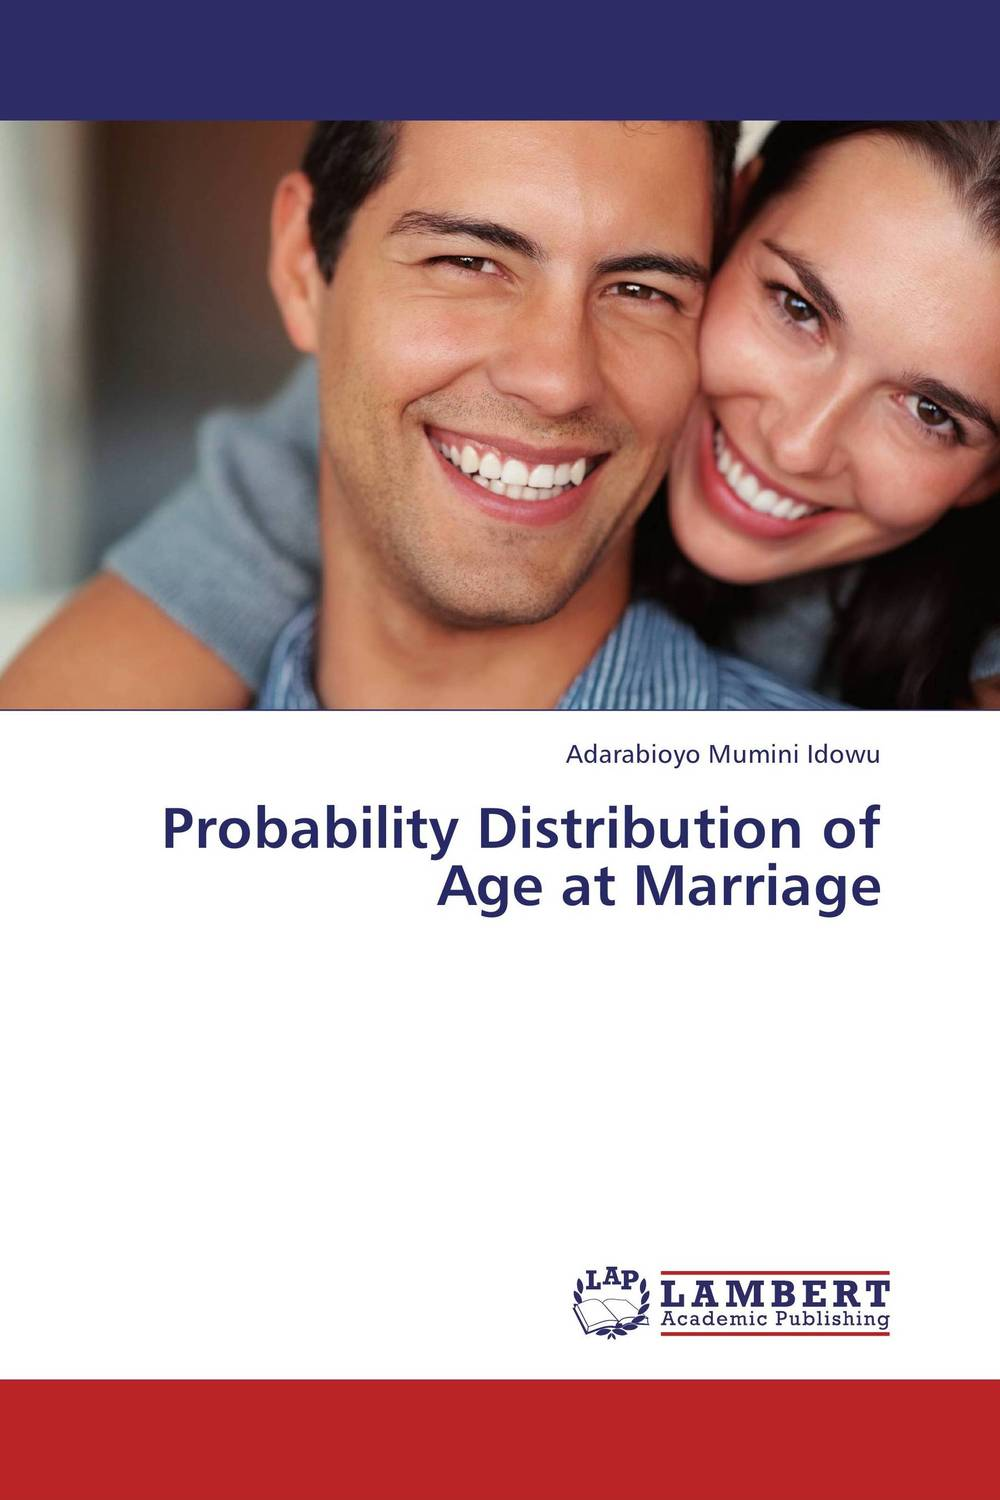 Probability Distribution of Age at Marriage